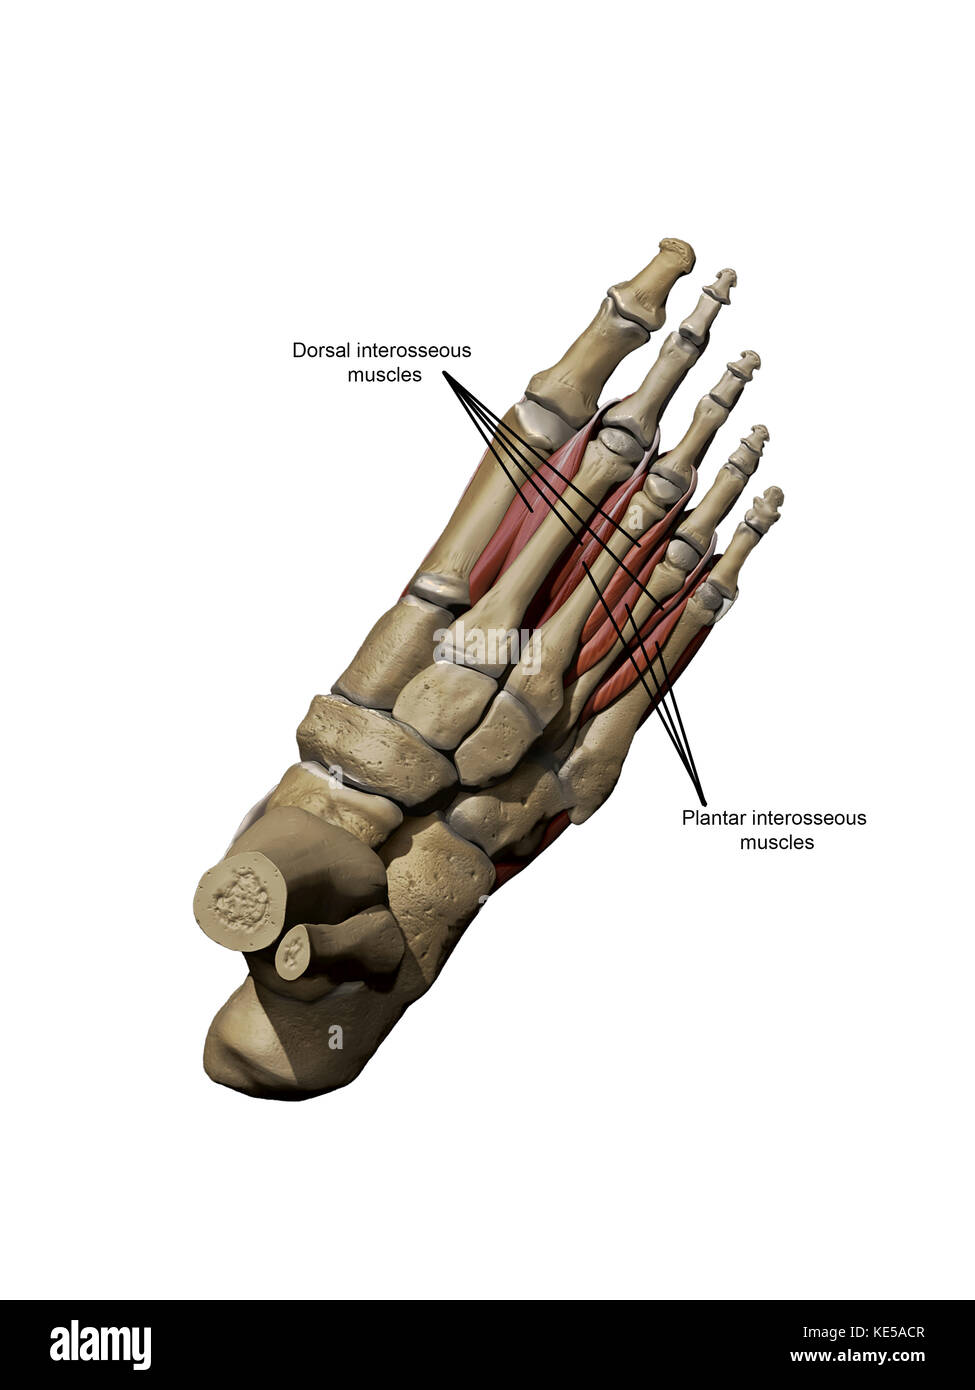 3D model of the foot depicting the dorsal deep muscles and bone